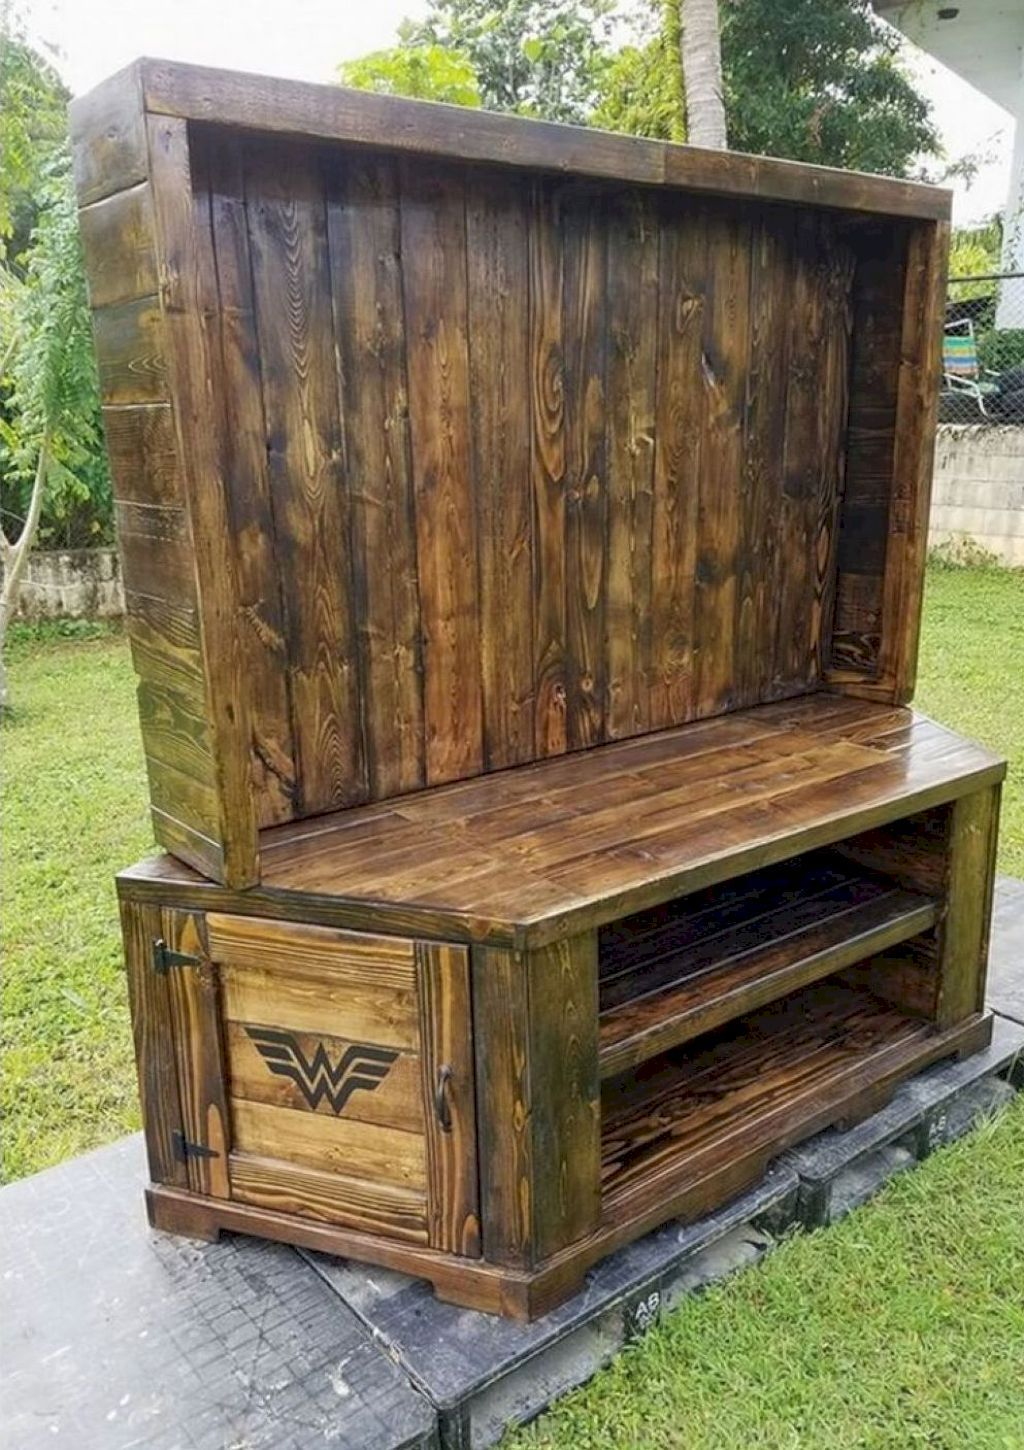 homemade pallet furniture. Awesome 70 Cool Wooden Pallet Furniture Project Ideas Https://homeylife.com/ Homemade O